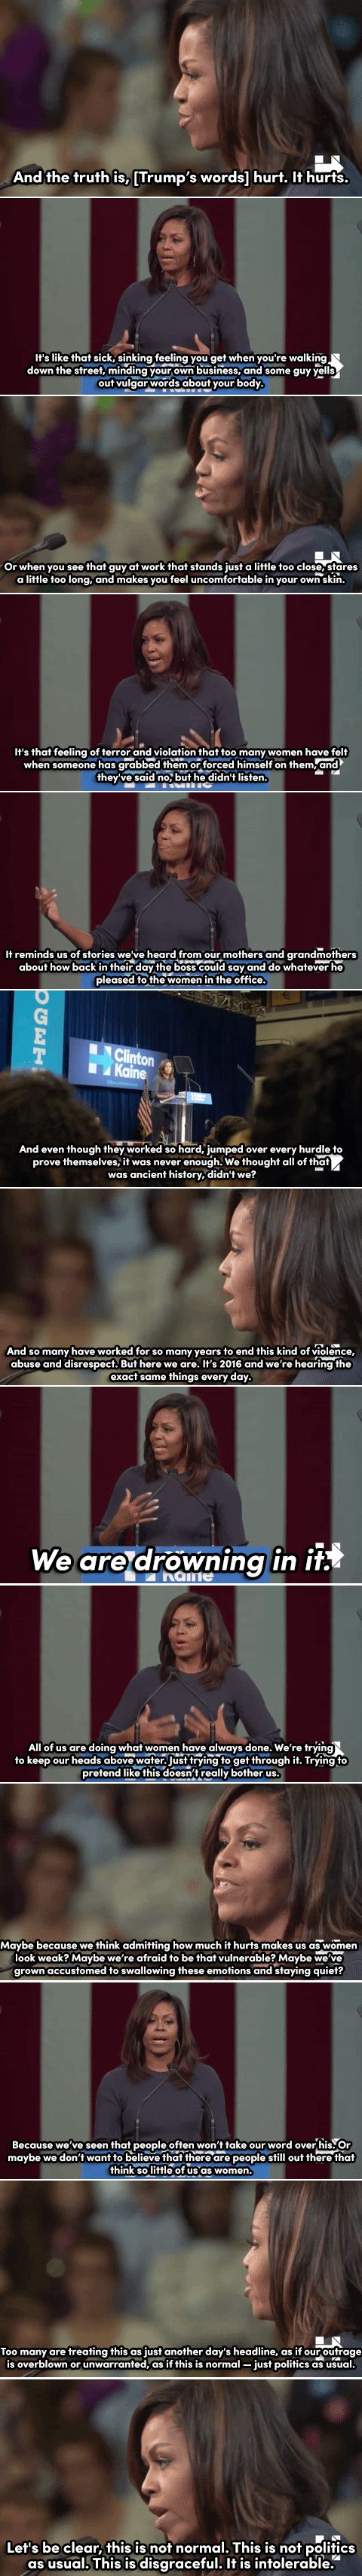 Michelle Obama's speech on the Trump tapes should be required viewing for all Americans